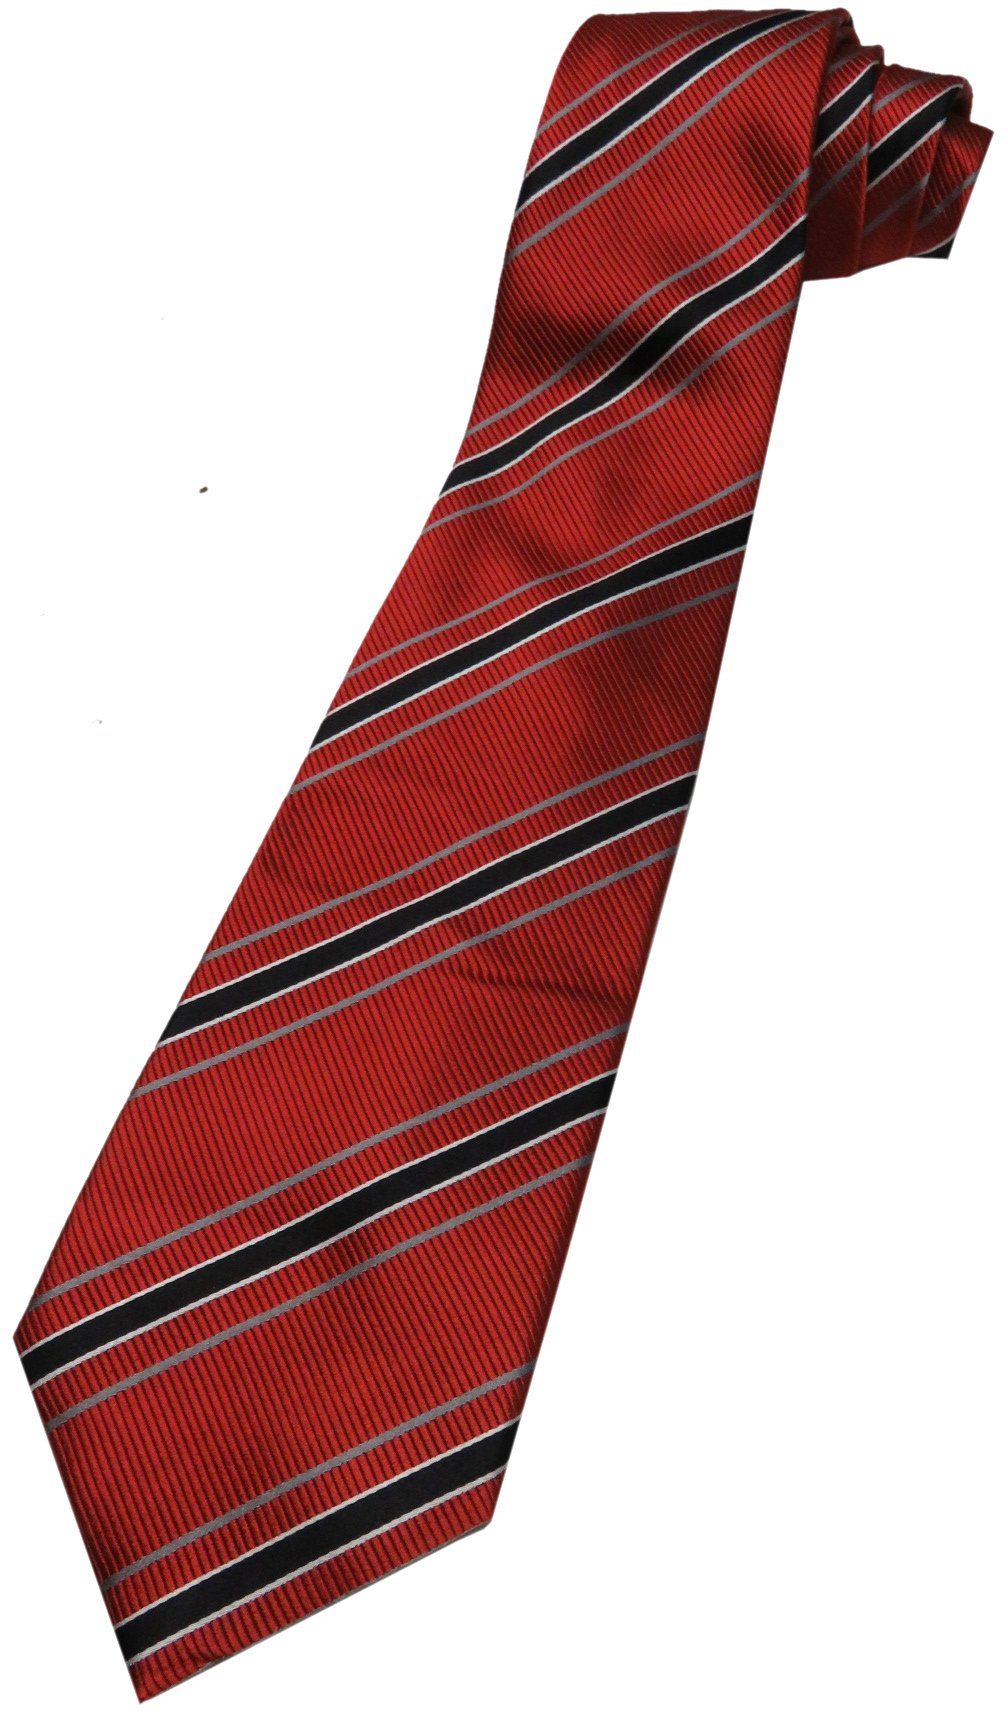 Donald Trump Neck Tie Red, Black and Silver Striped with Gold Crest